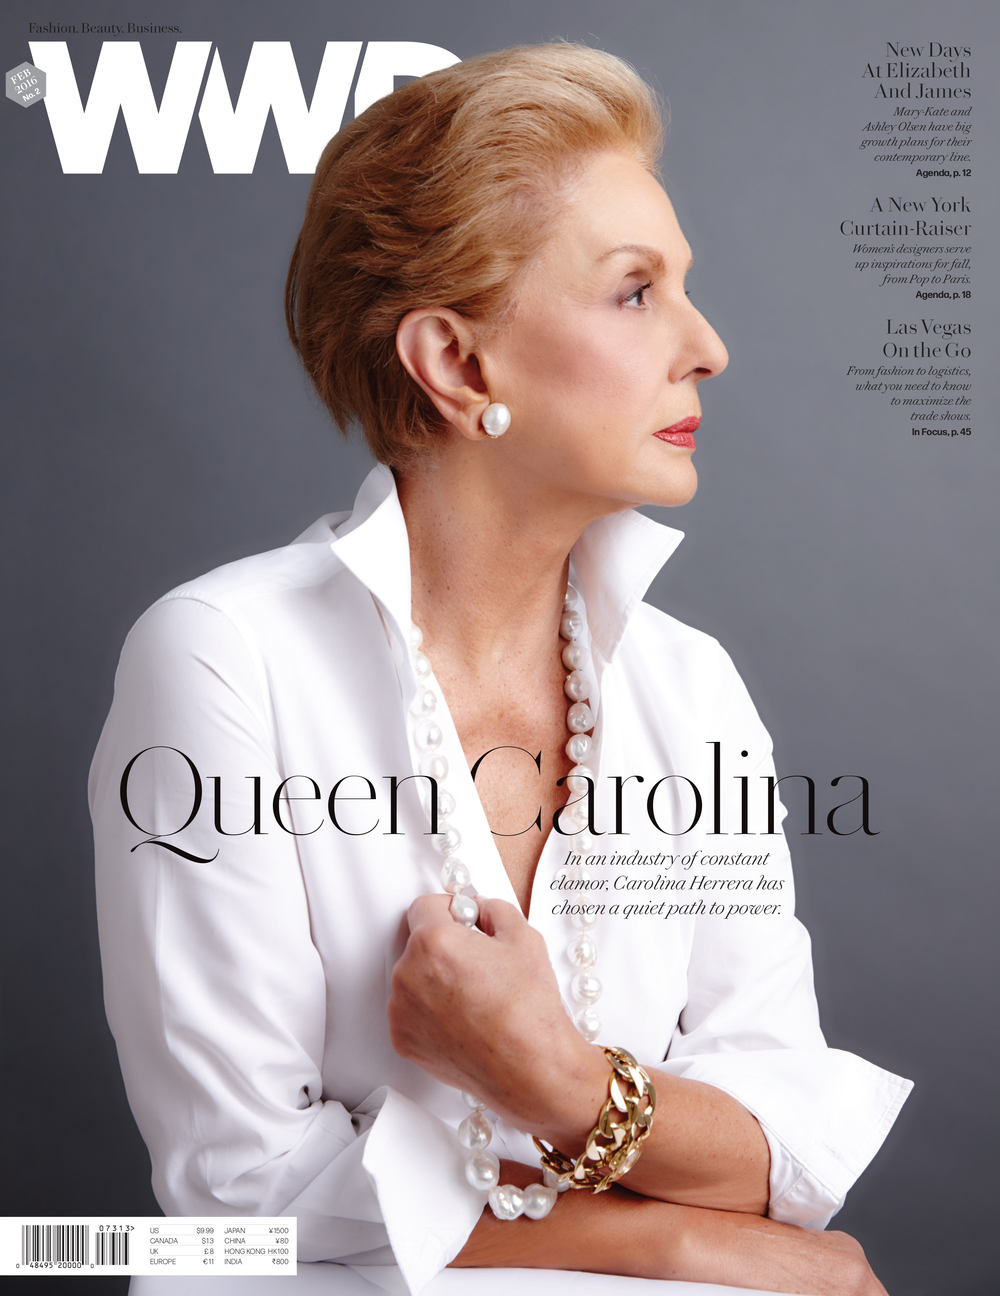 Carolina Herrera photographed by Nigel Parry